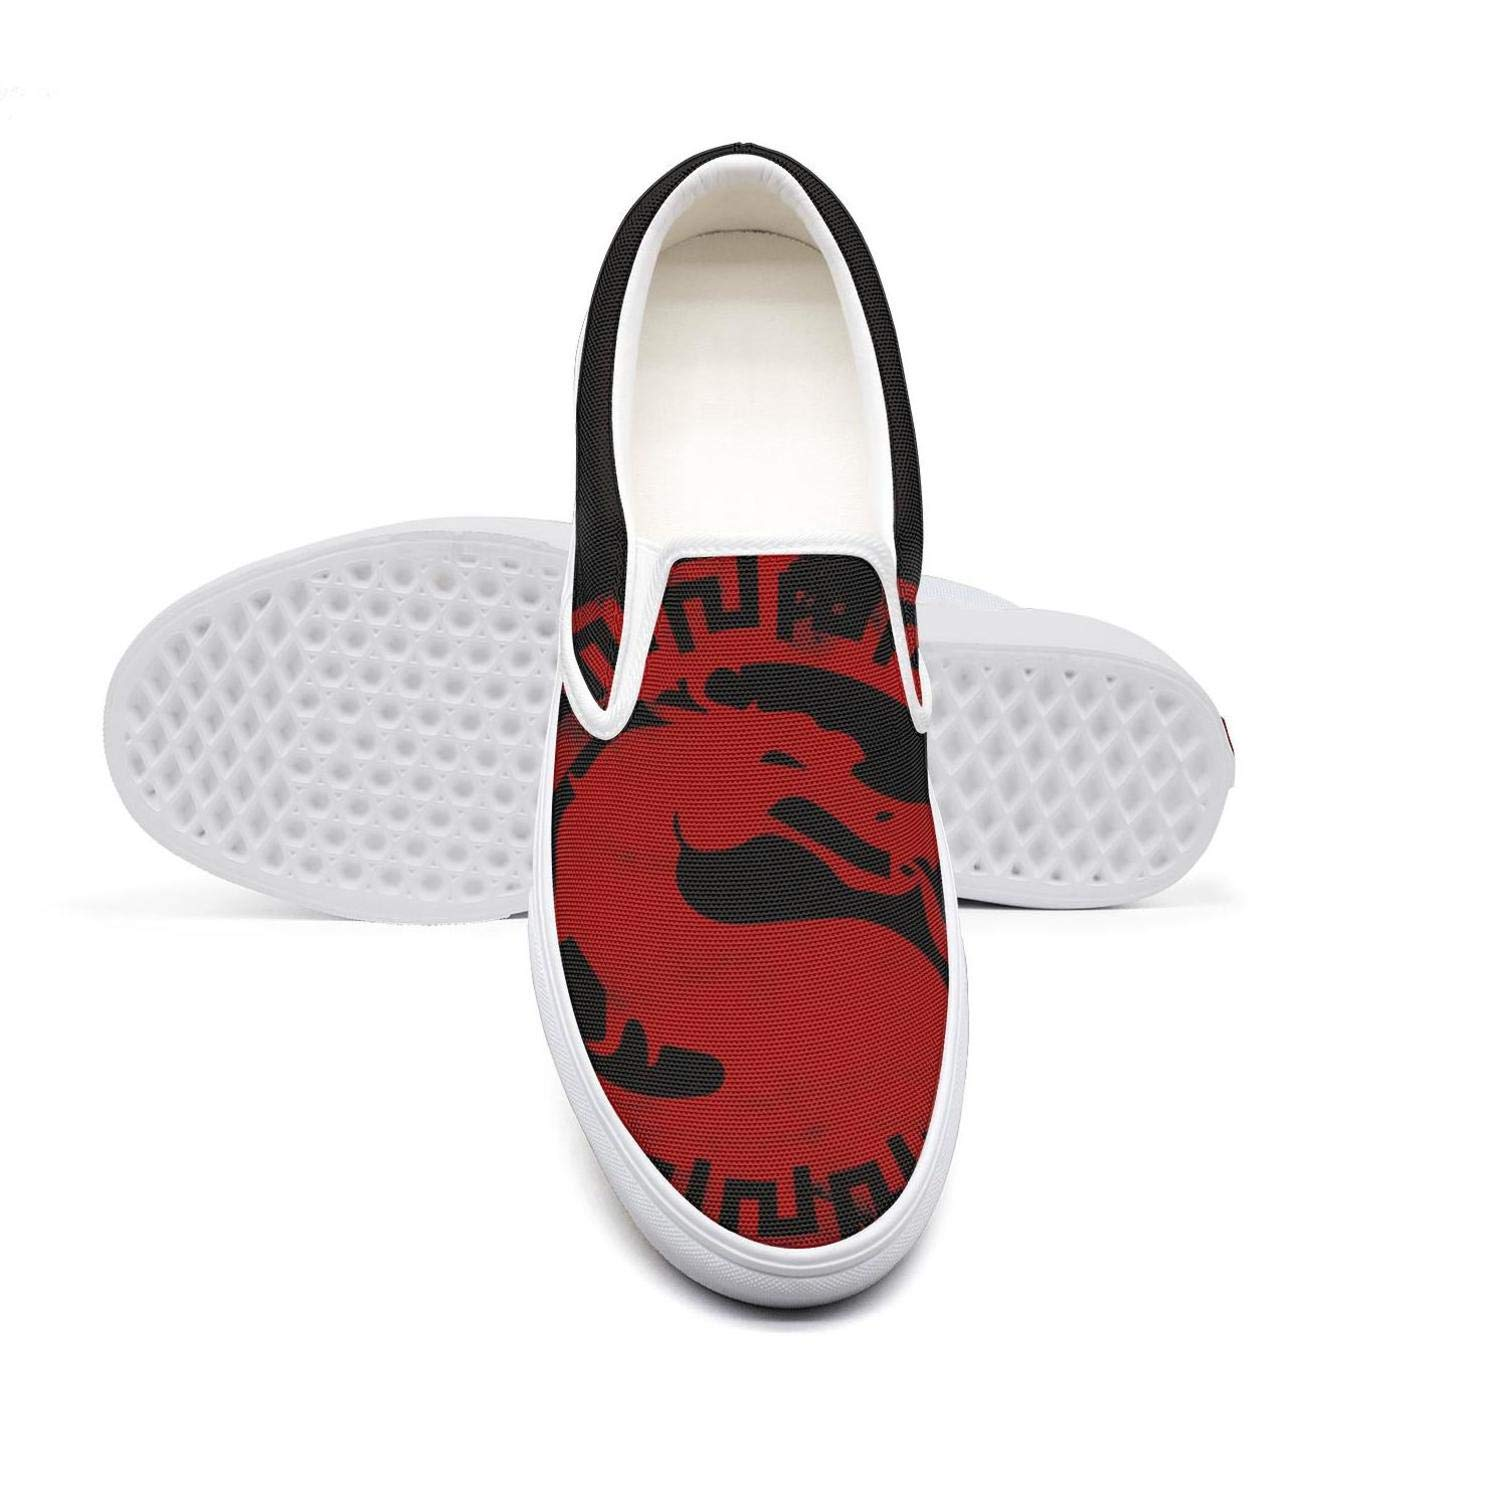 Man Scorpion-Mortal-Kombat Fashion Sneakers for Mens Highly Breathable Casual Shoes